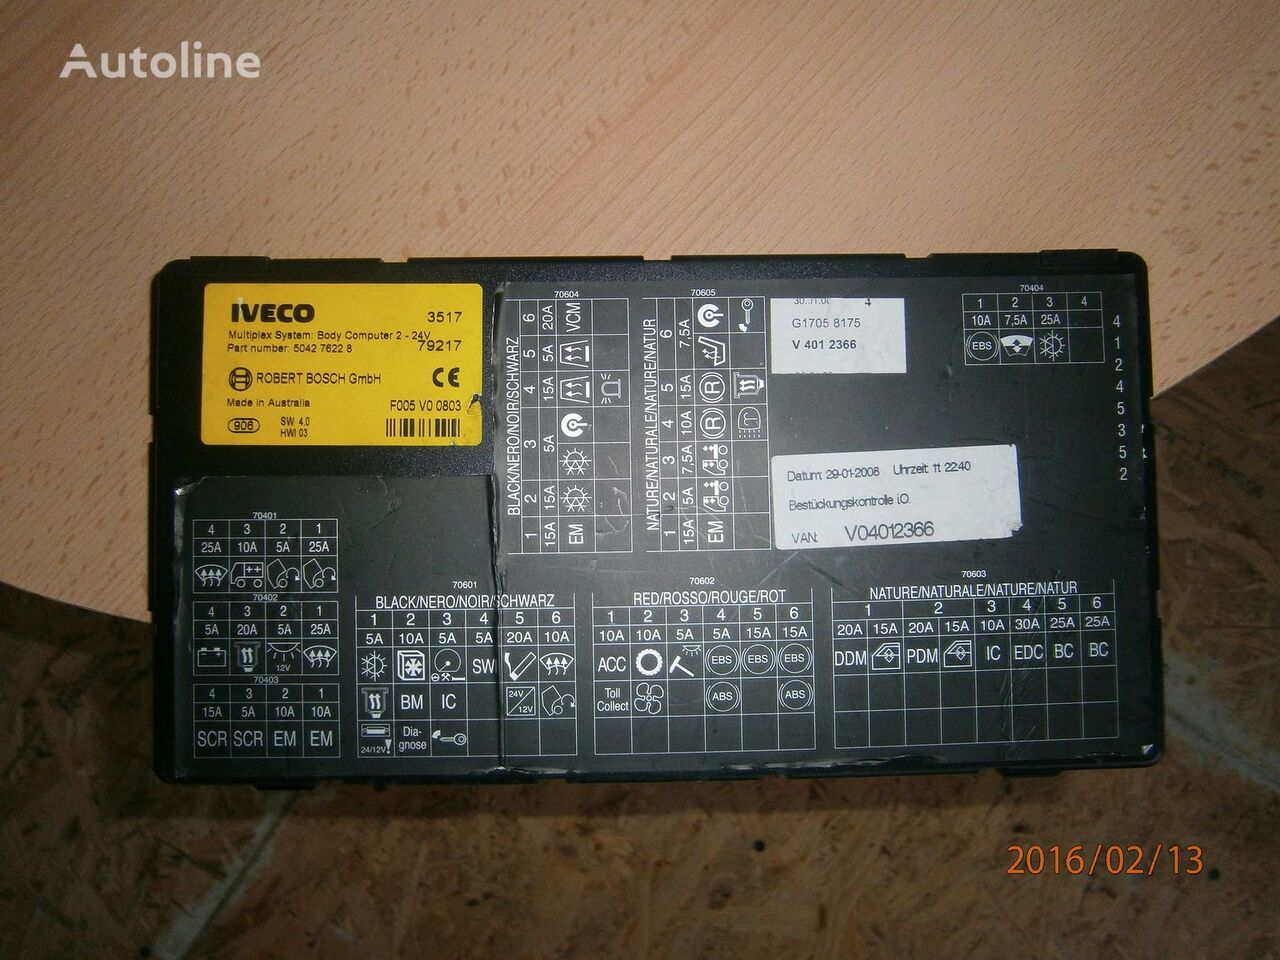 Iveco Stralis EURO5 Multiplex system body computer 504276228 control unit for IVECO Stralis tractor unit